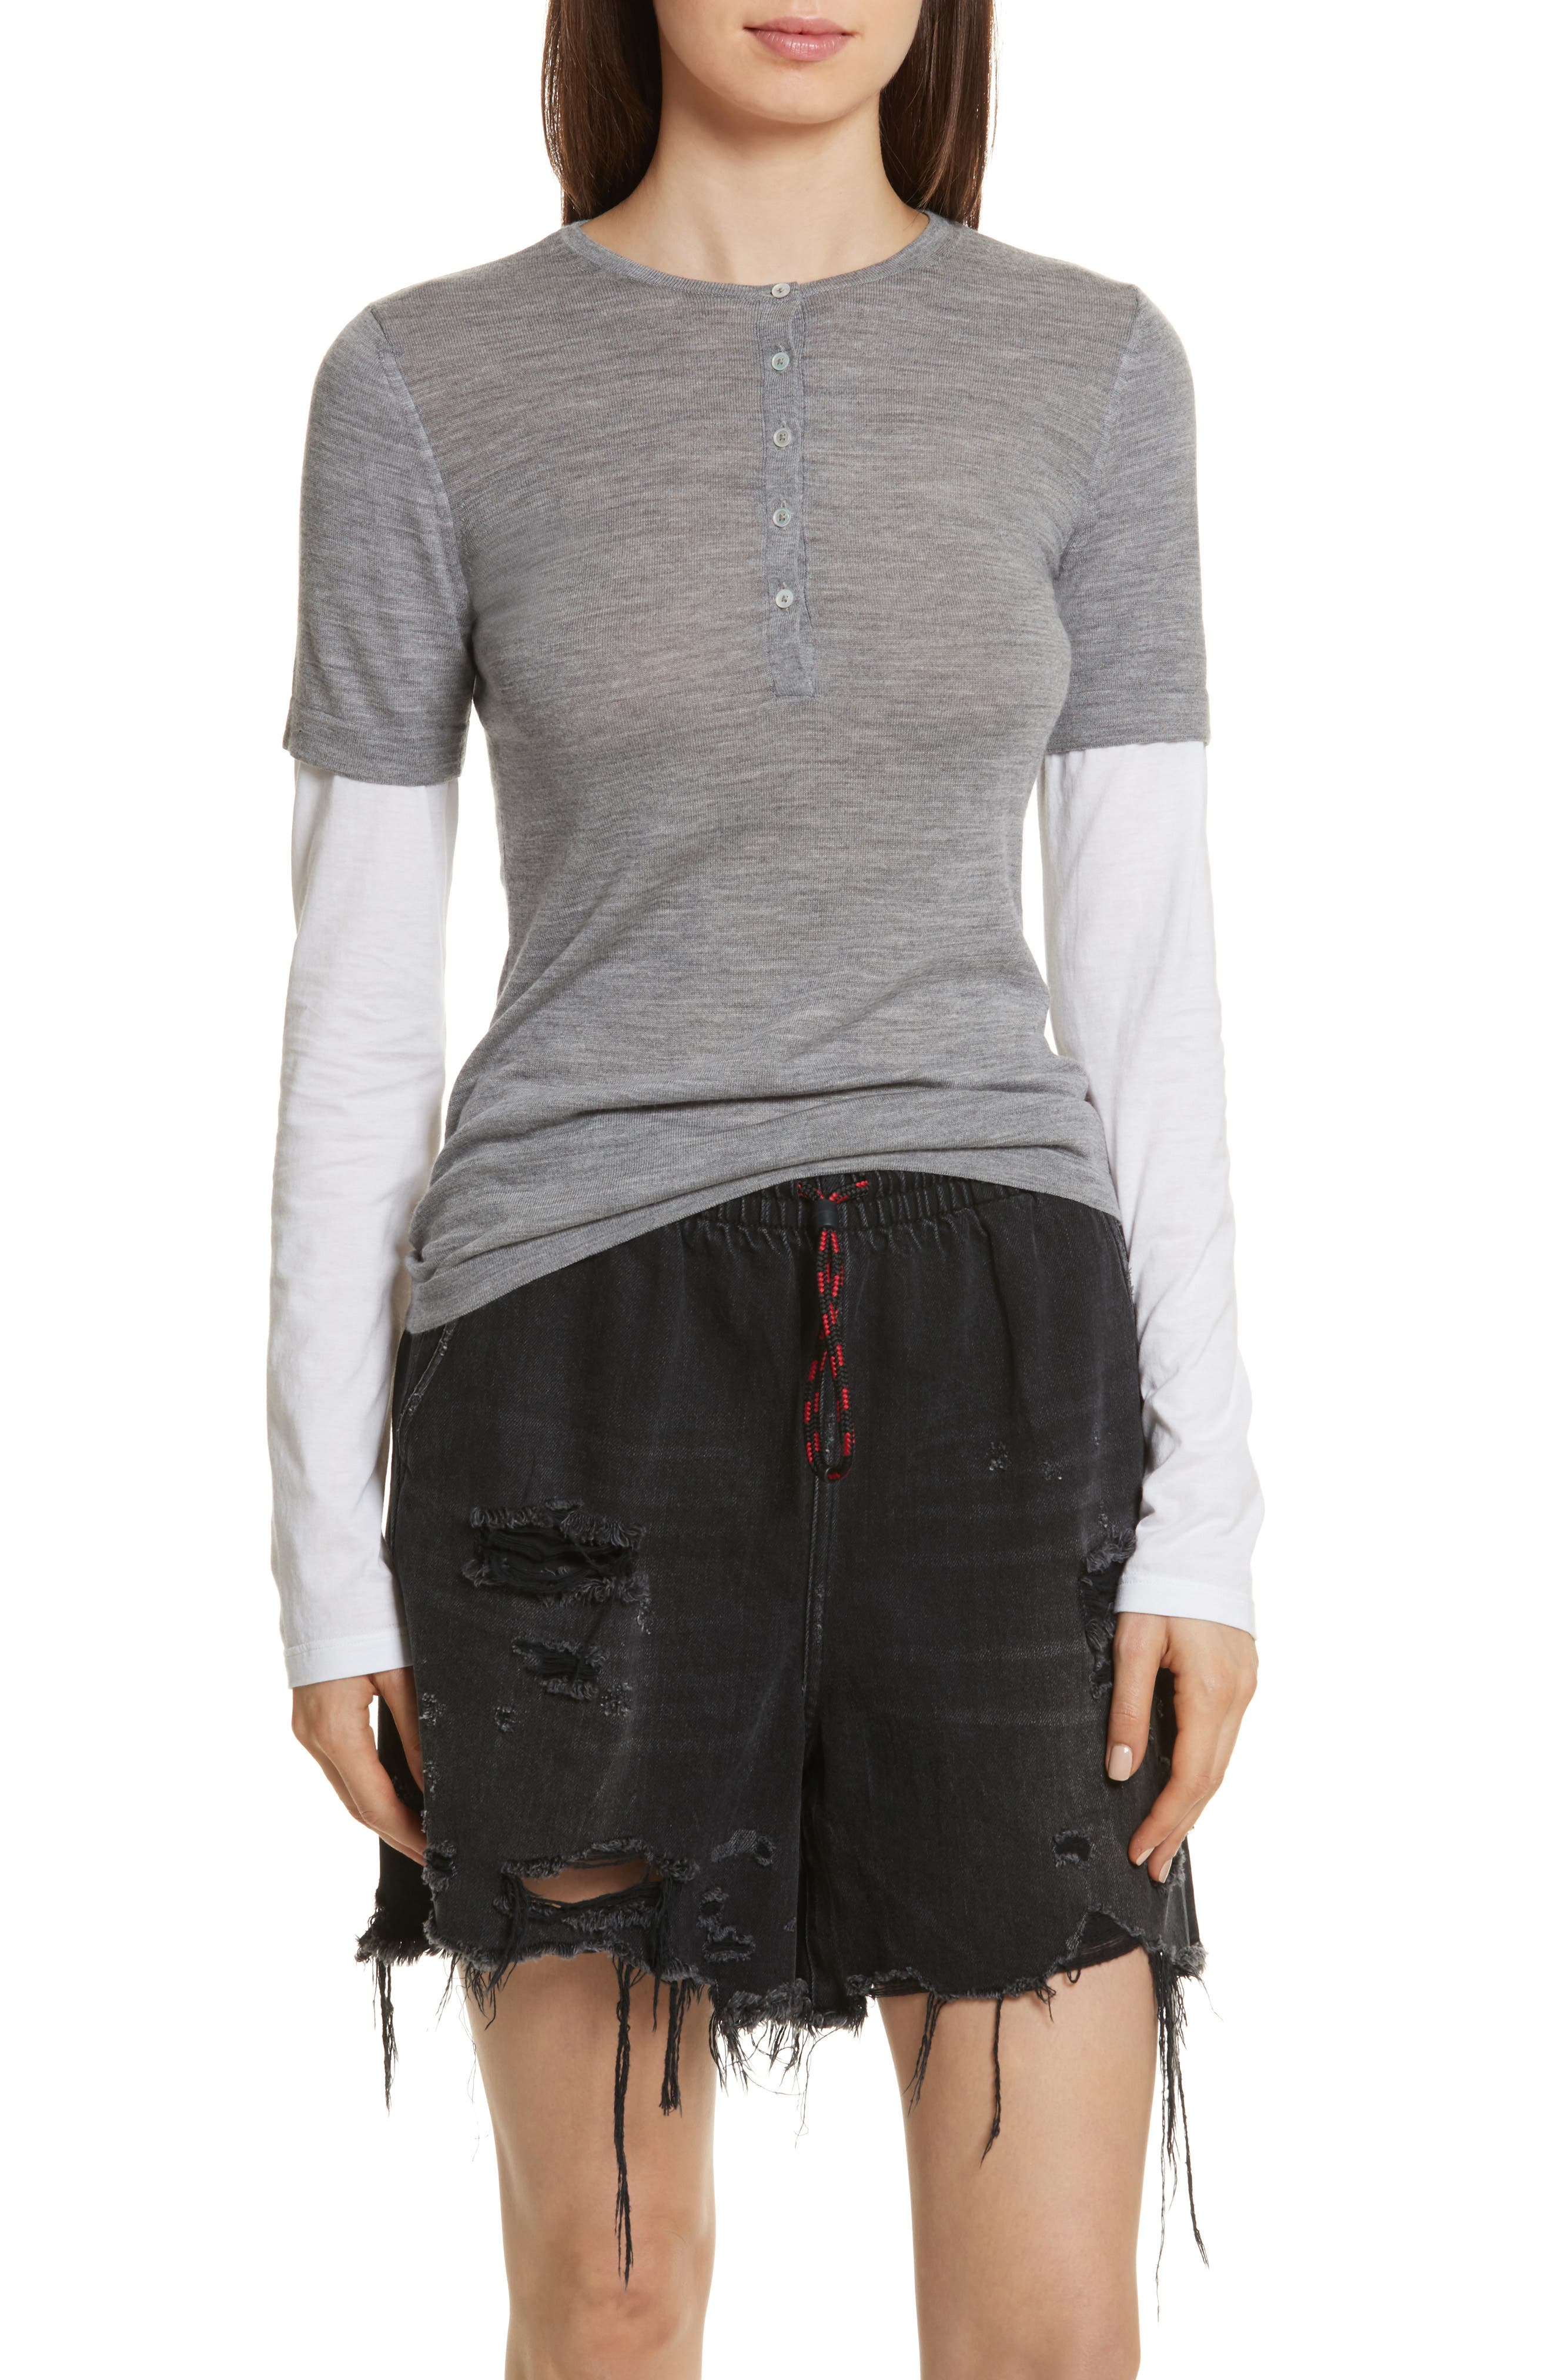 Alternate Image 1 Selected - T by Alexander Wang Knit Merino Wool Layered Top